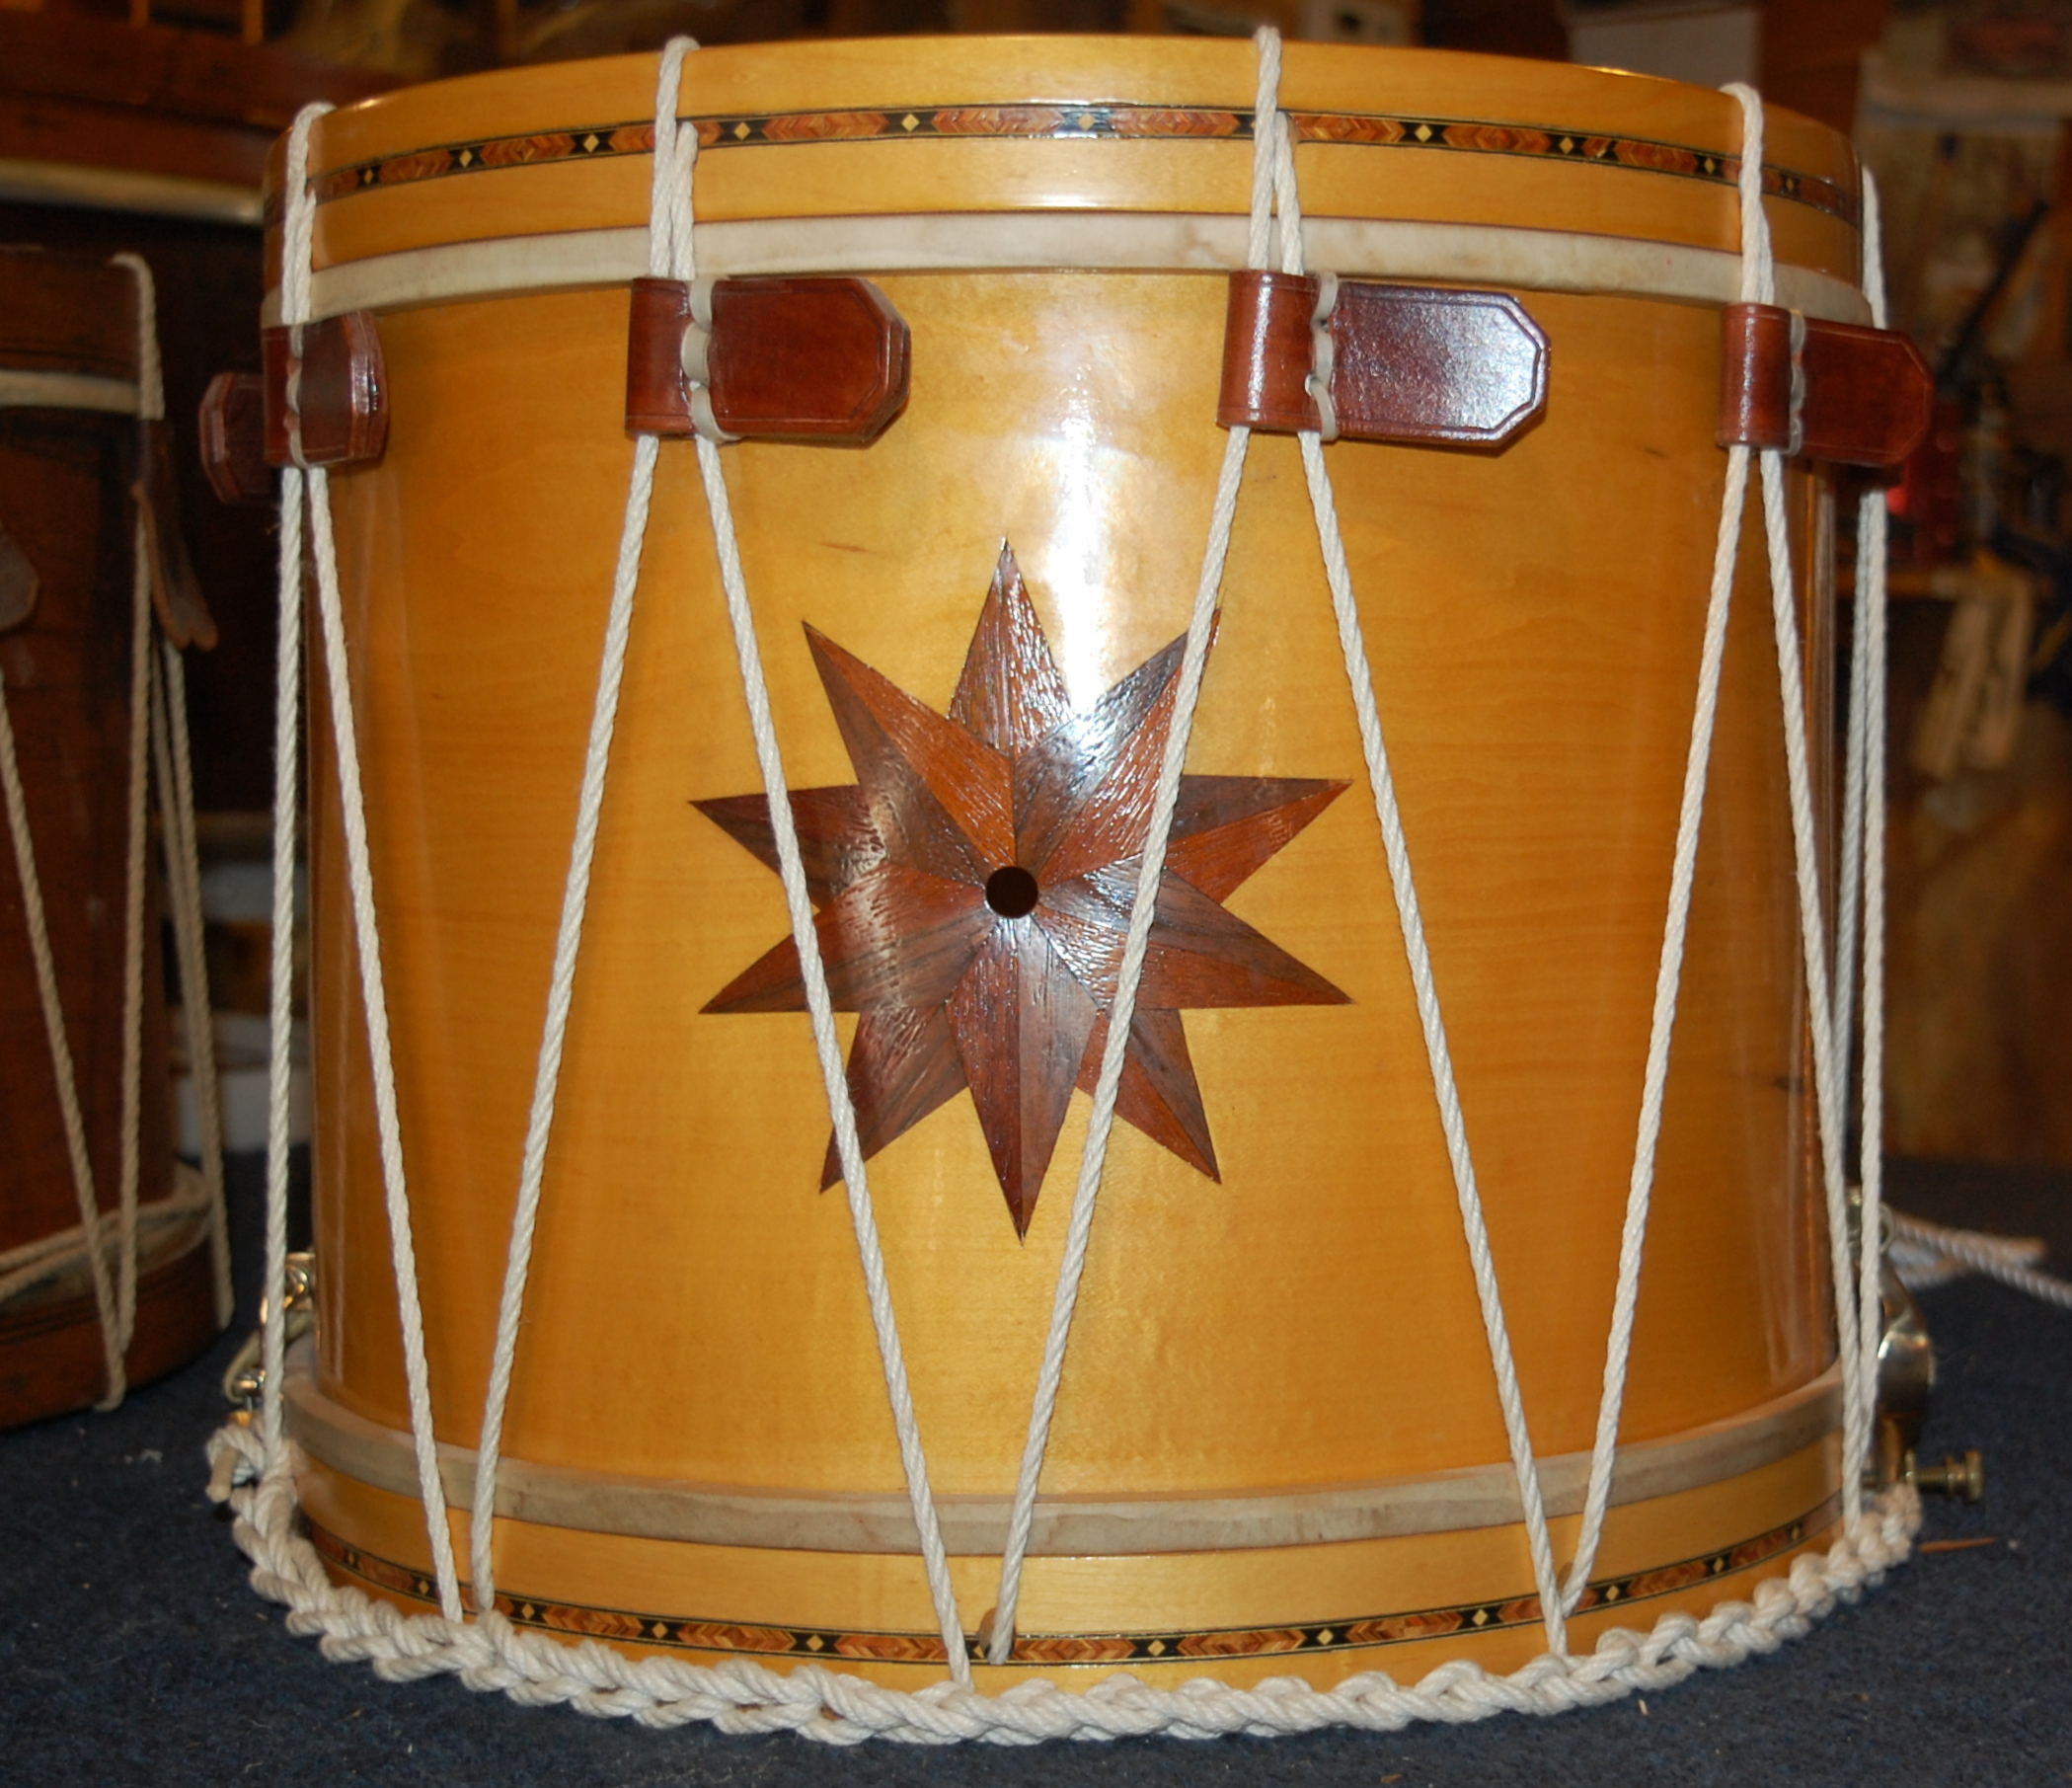 Special Offers Rope Tension Drums Cooperman Fife And Snare Drum Diagram